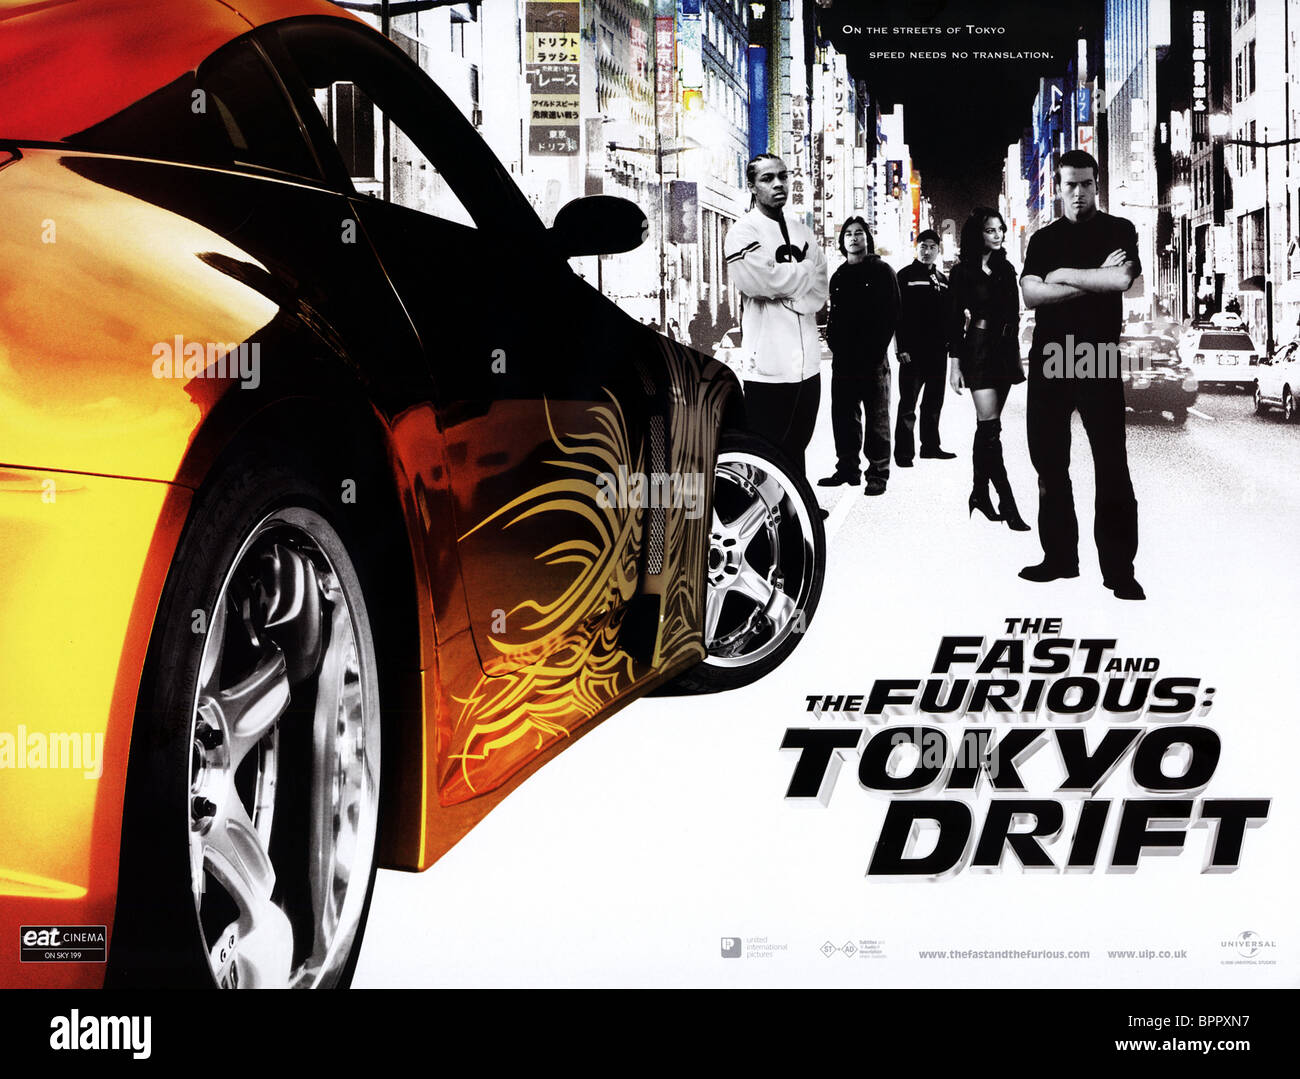 Fast And Furious 3 Full Movie >> Film Poster The Fast And The Furious 3 The Fast And The Furious